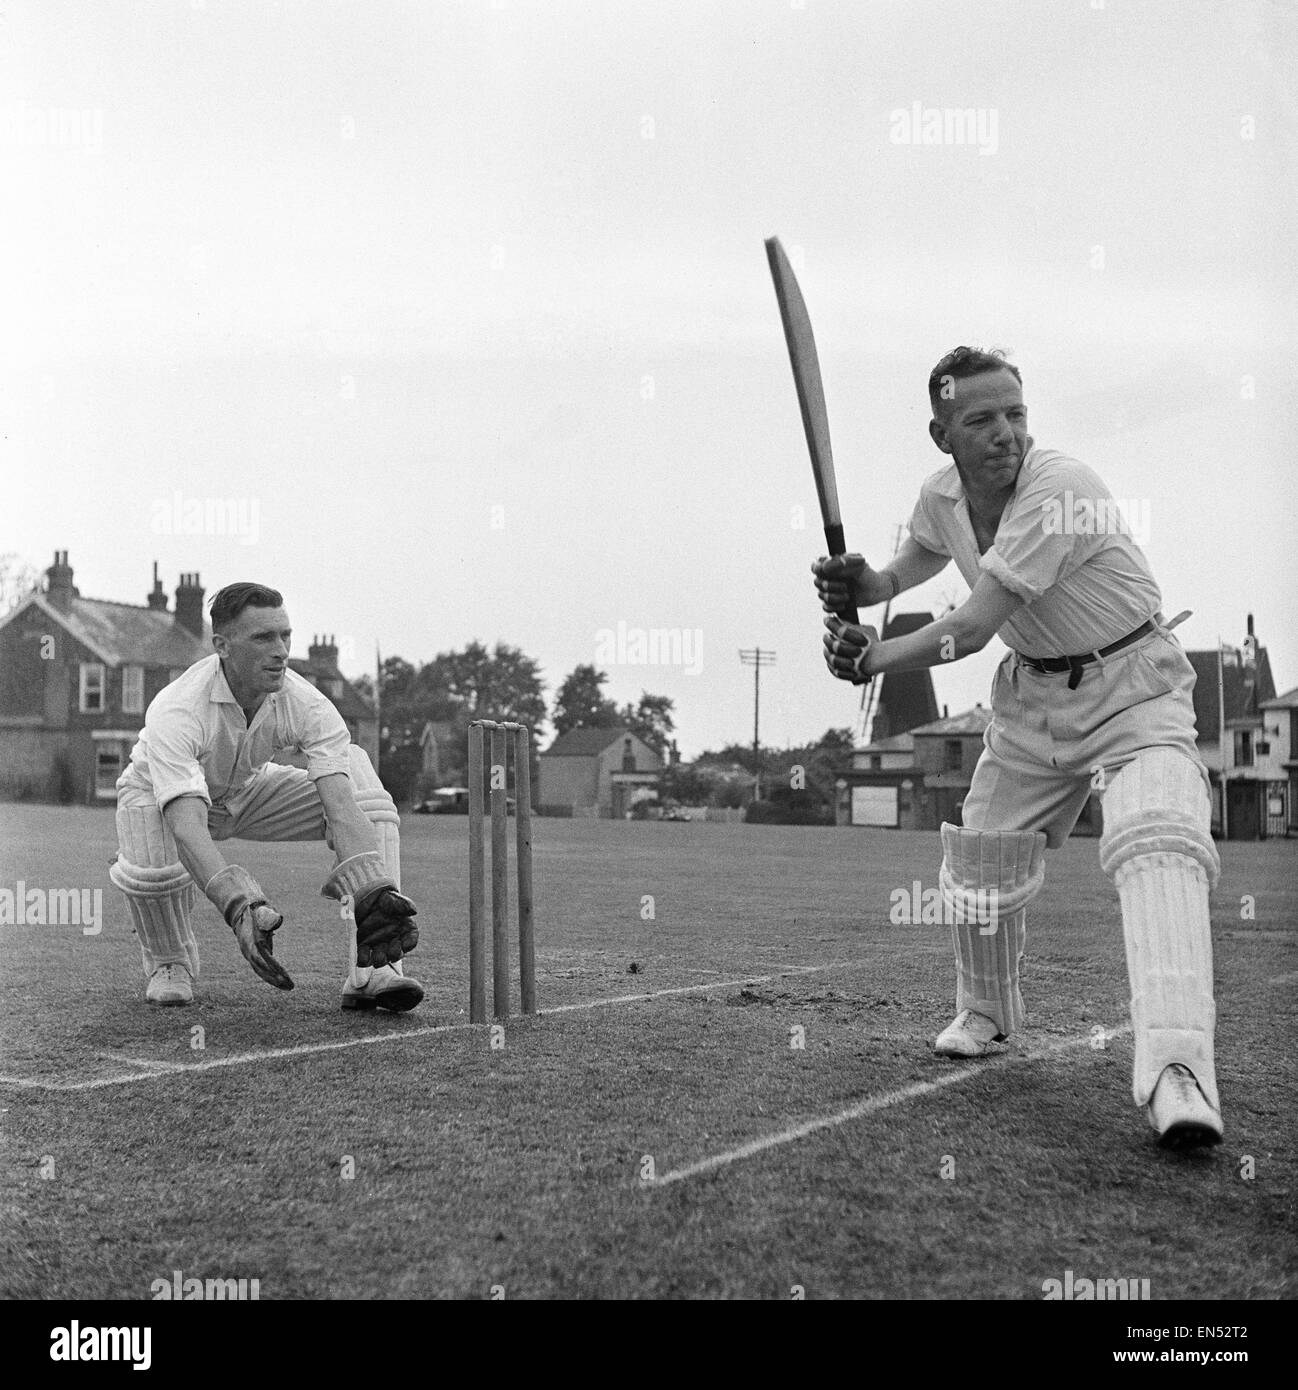 Batsman of the local cricket team at Meopham one of the oldest teams in Kent seen here in action Circa June 1950 - Stock Image